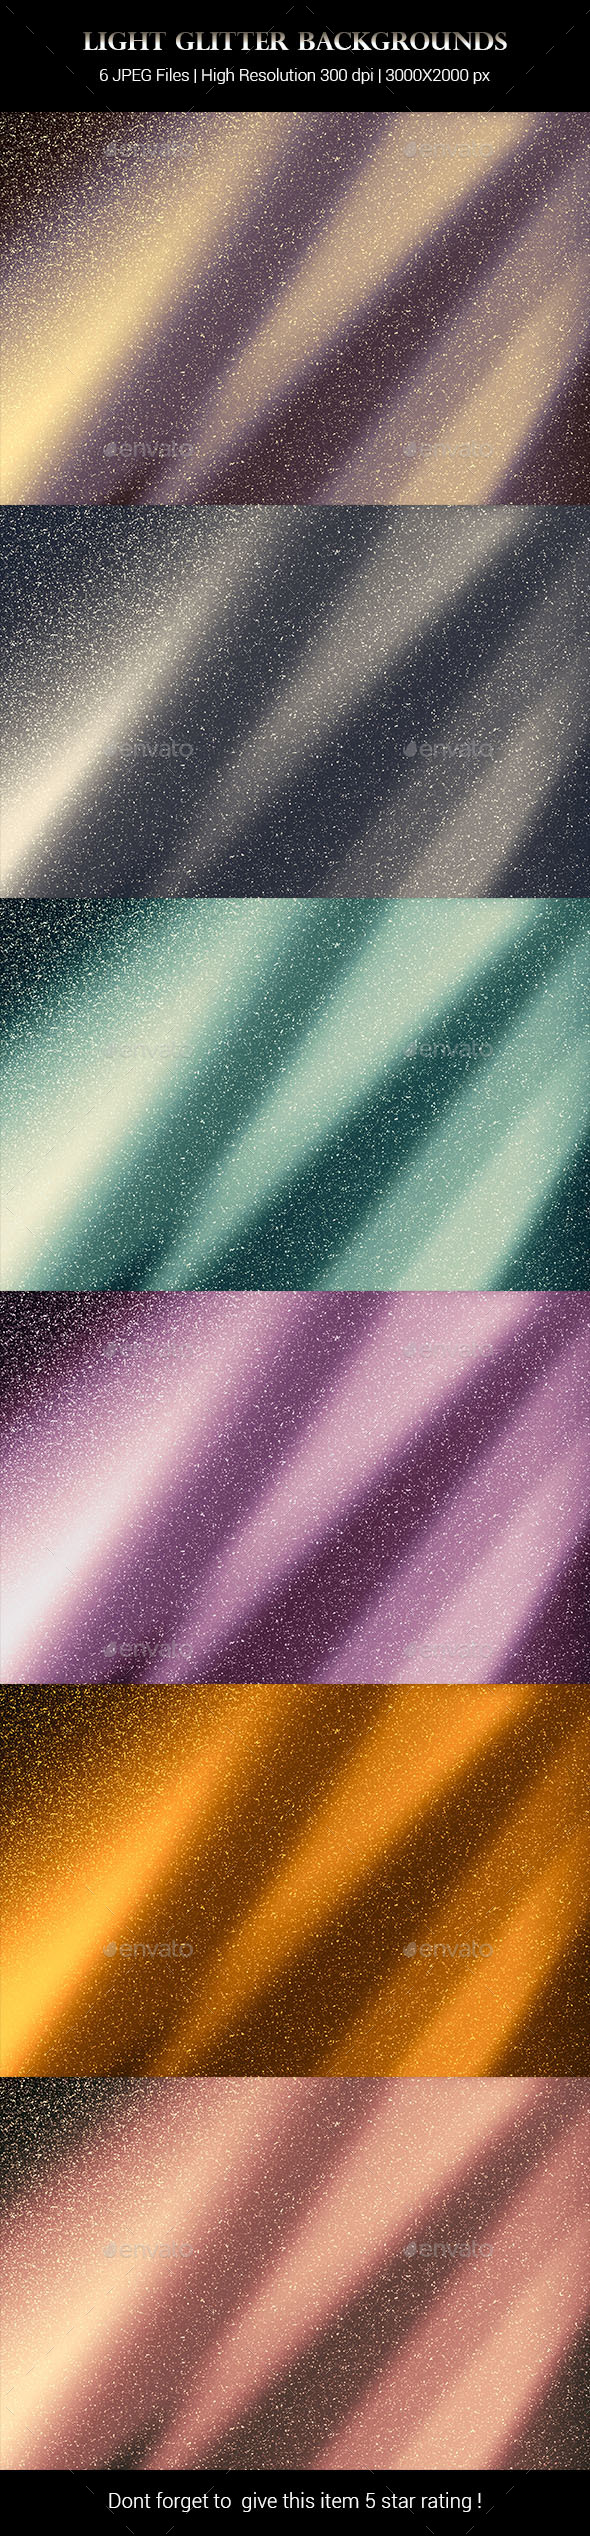 Light Glitter Backgrounds - Backgrounds Graphics